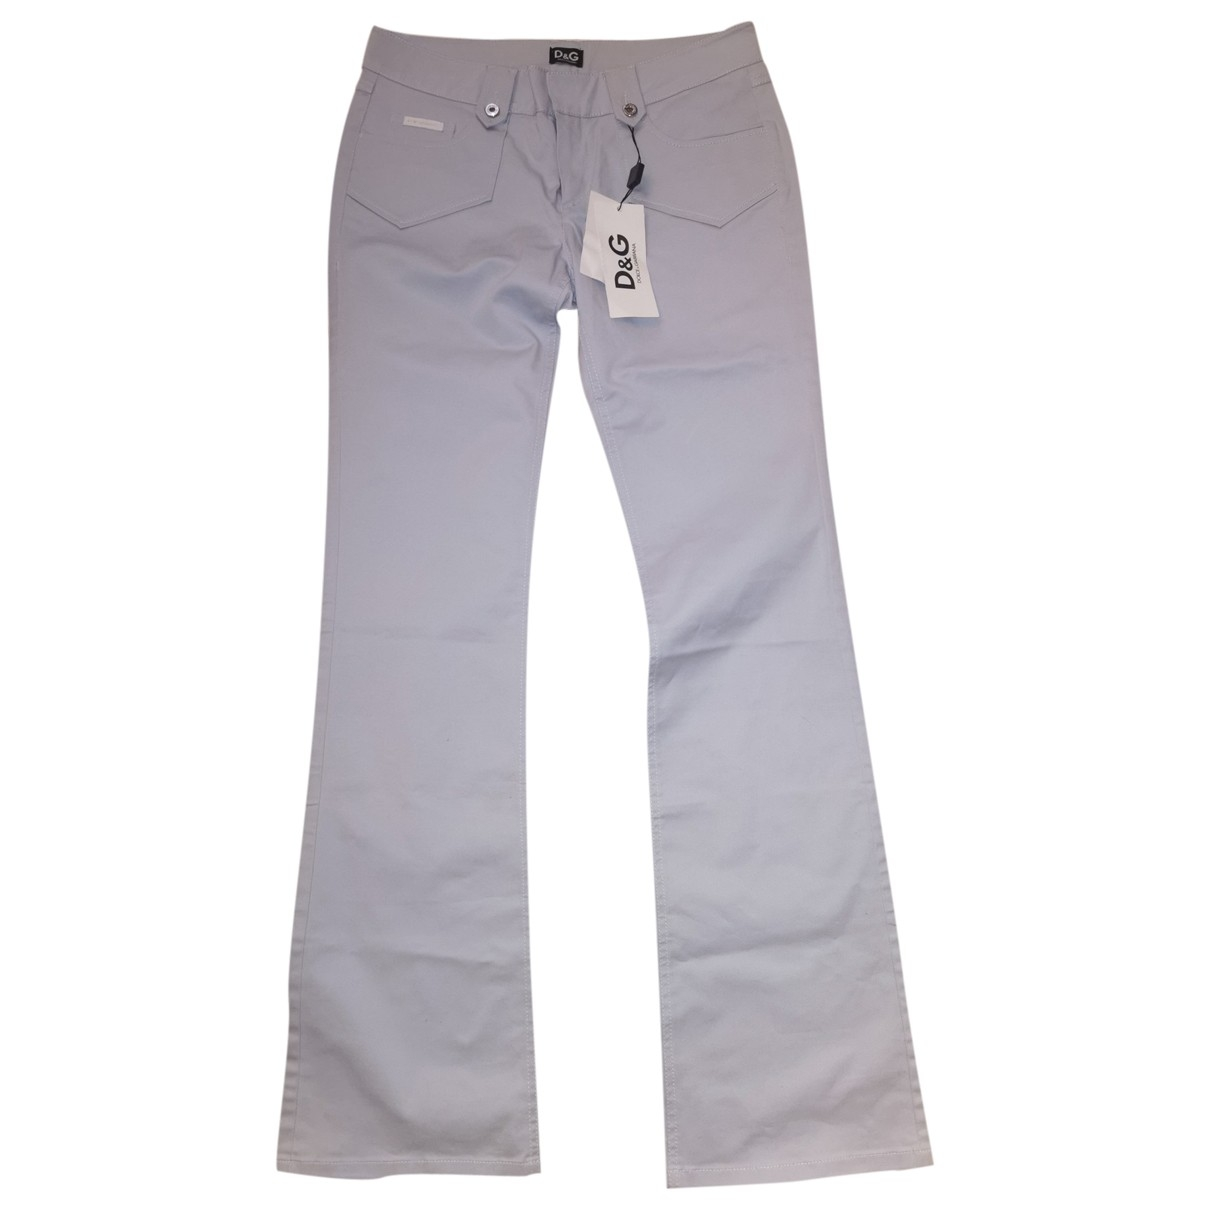 D&g \N Grey Cotton Jeans for Women 28 US